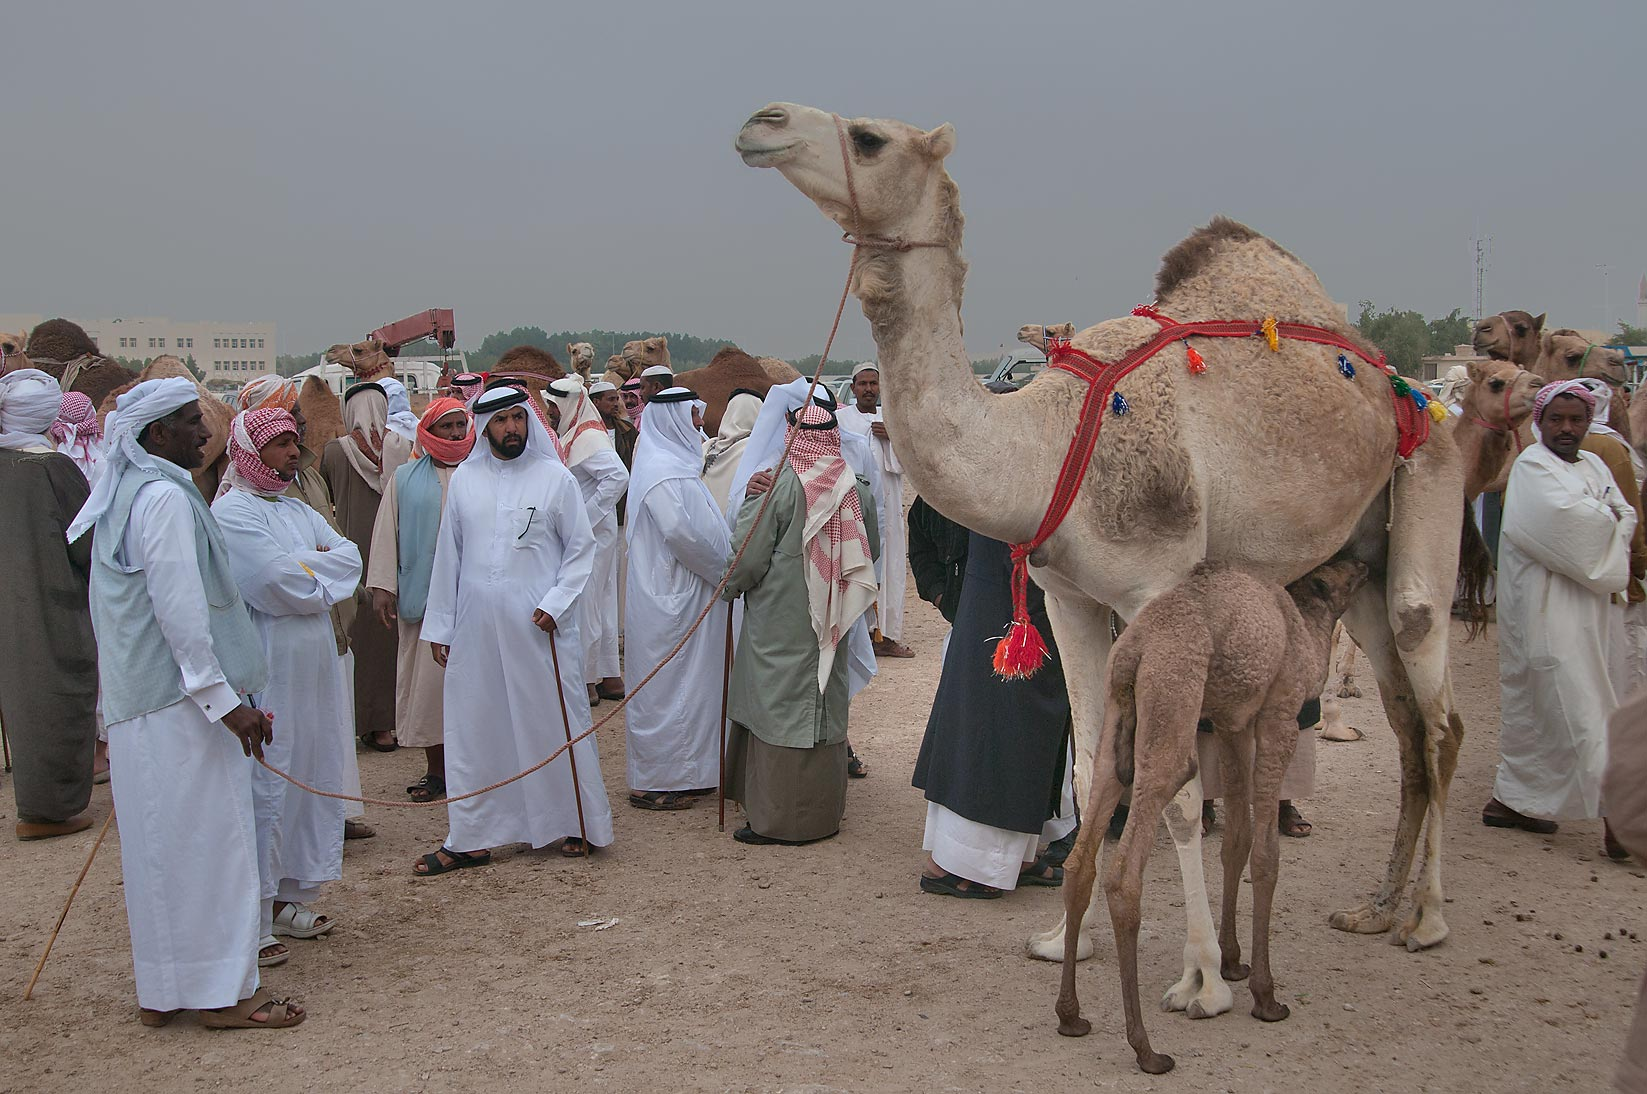 People examining a camel in Camel Market (Souq), racing section. Doha, Qatar